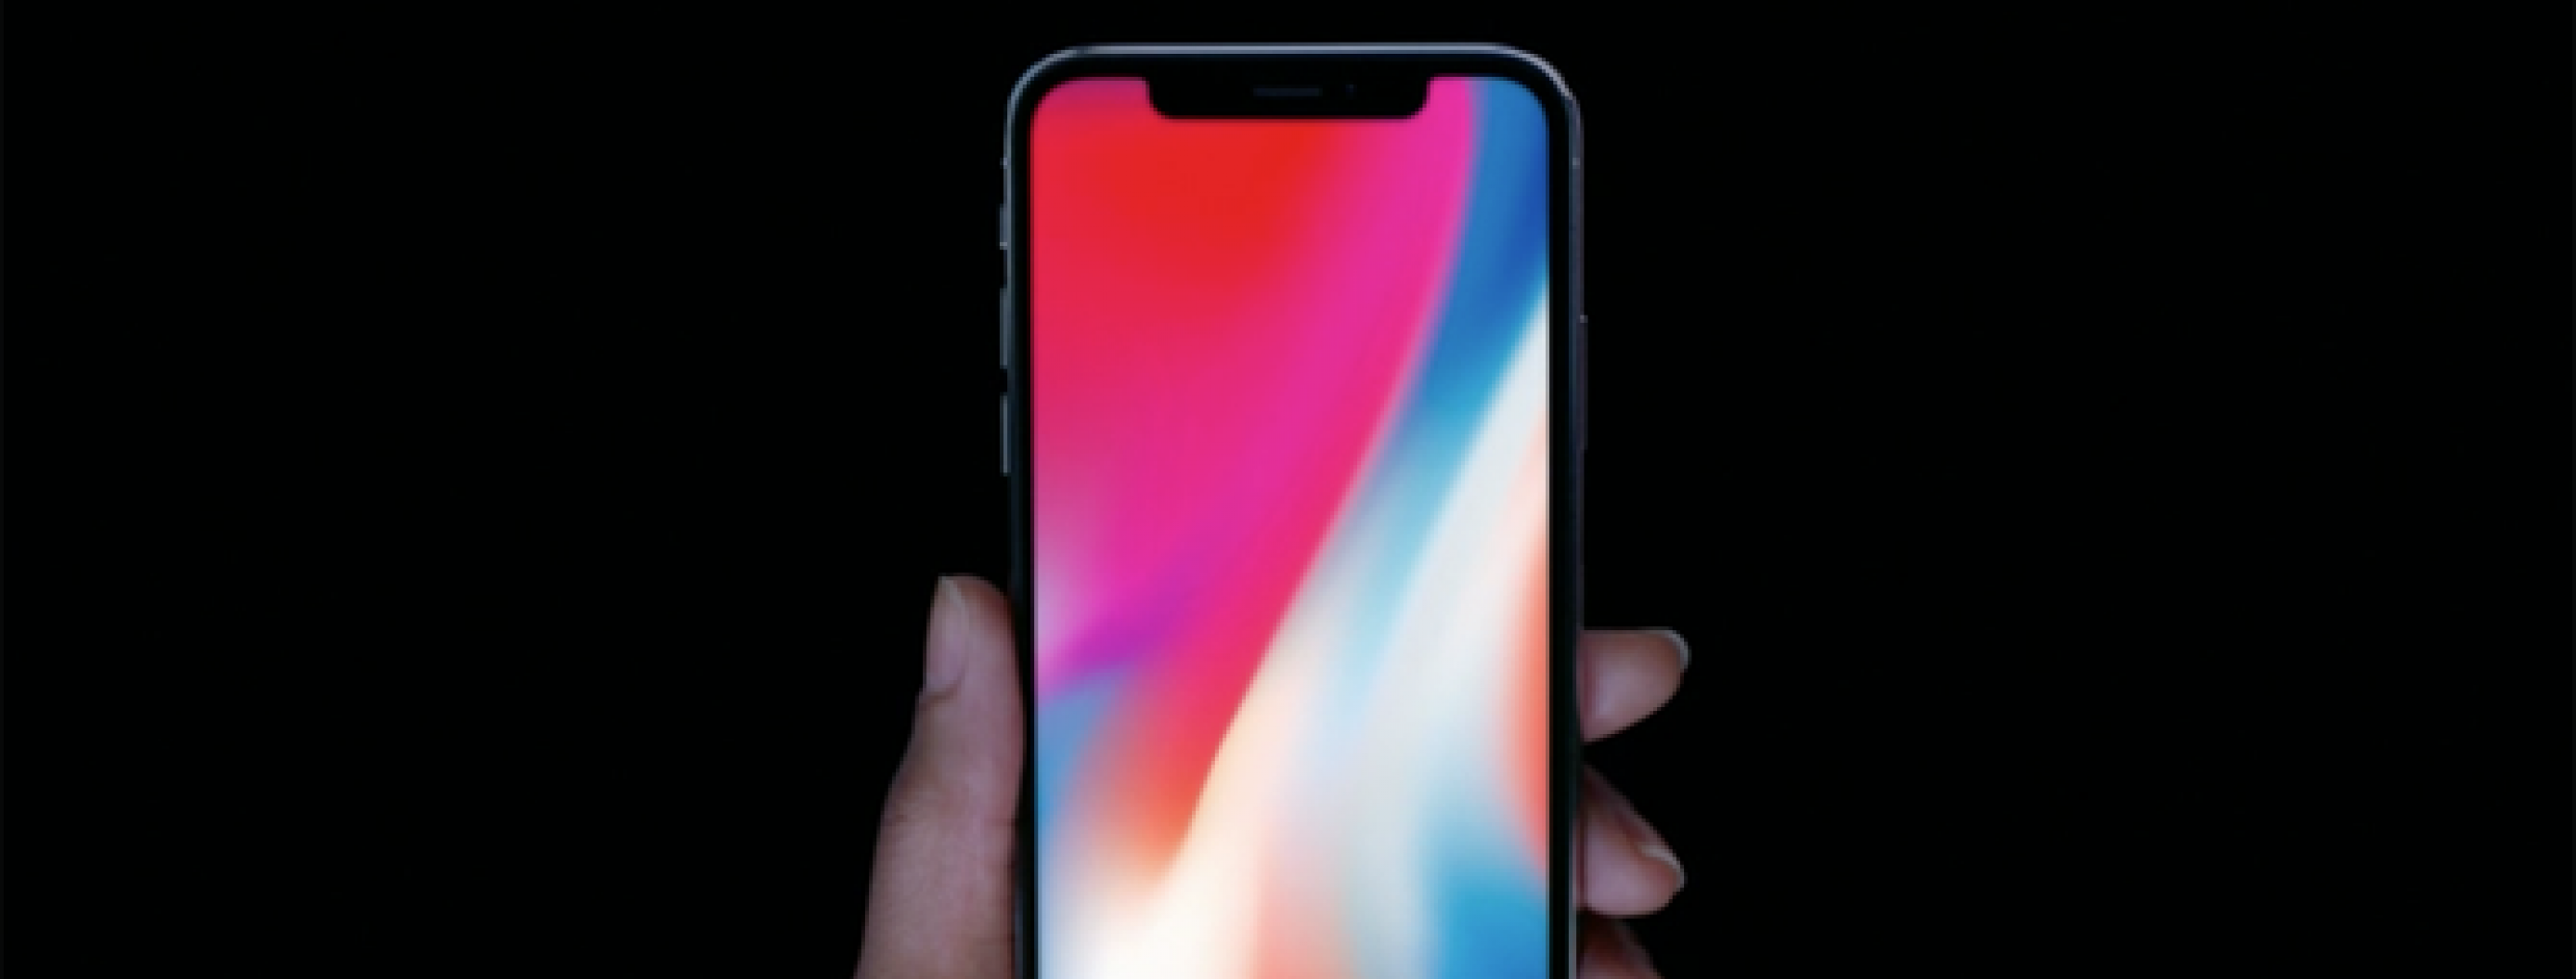 Apple's Ambitious iPhone X Is Out - Is It Really Worth $999?